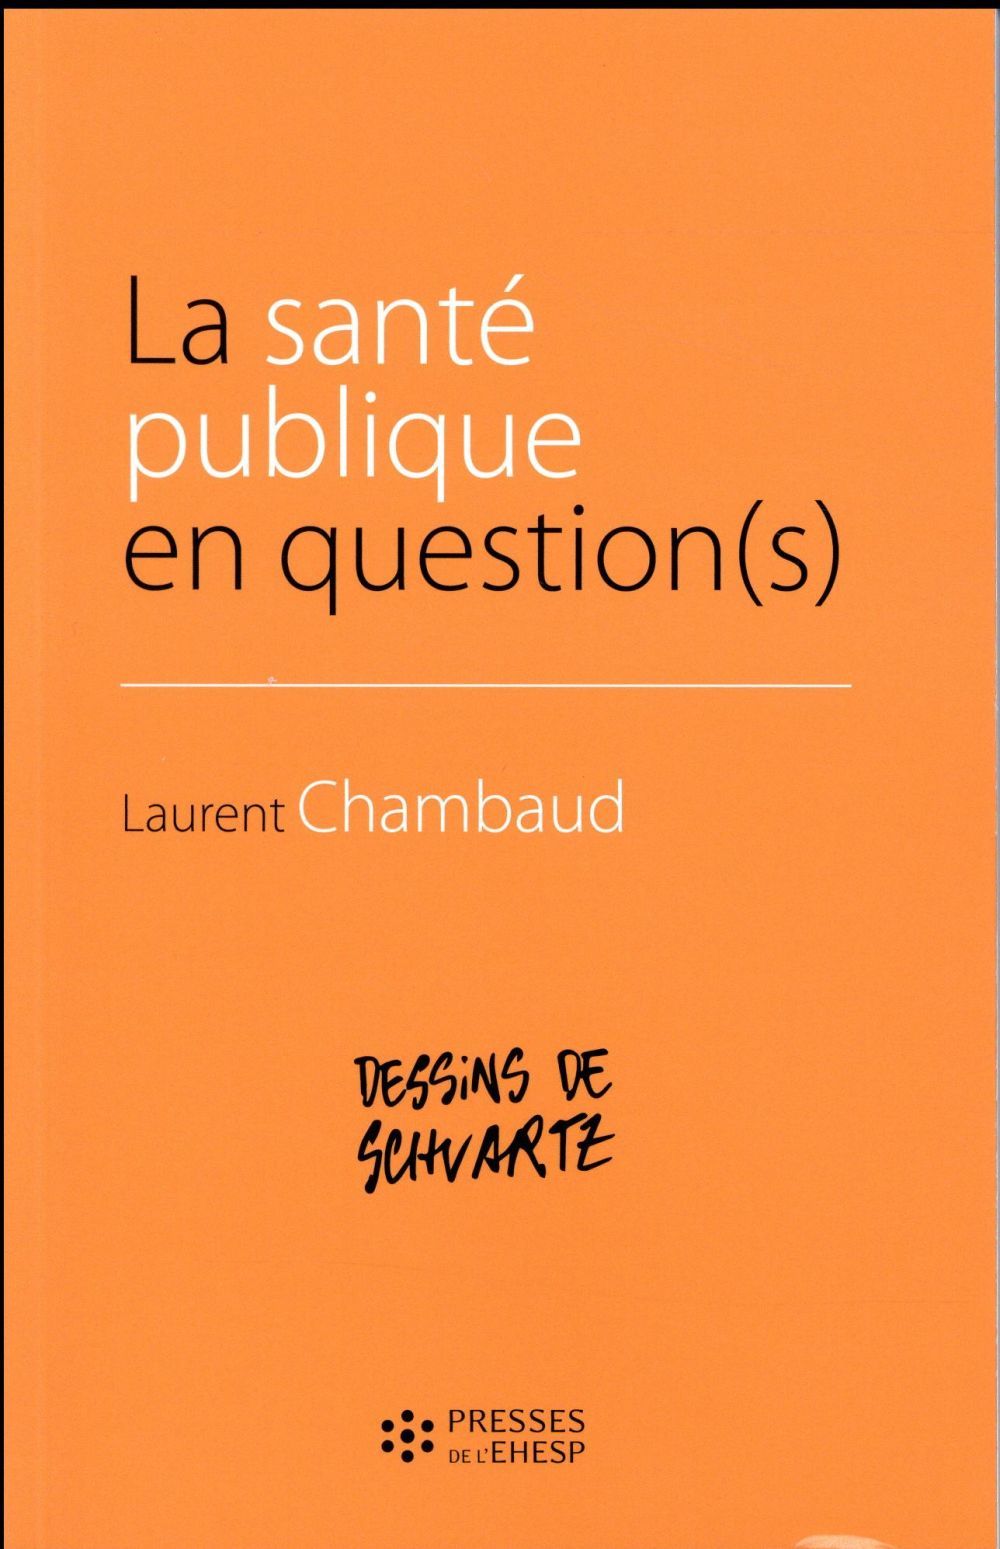 La santé publique en question(s)